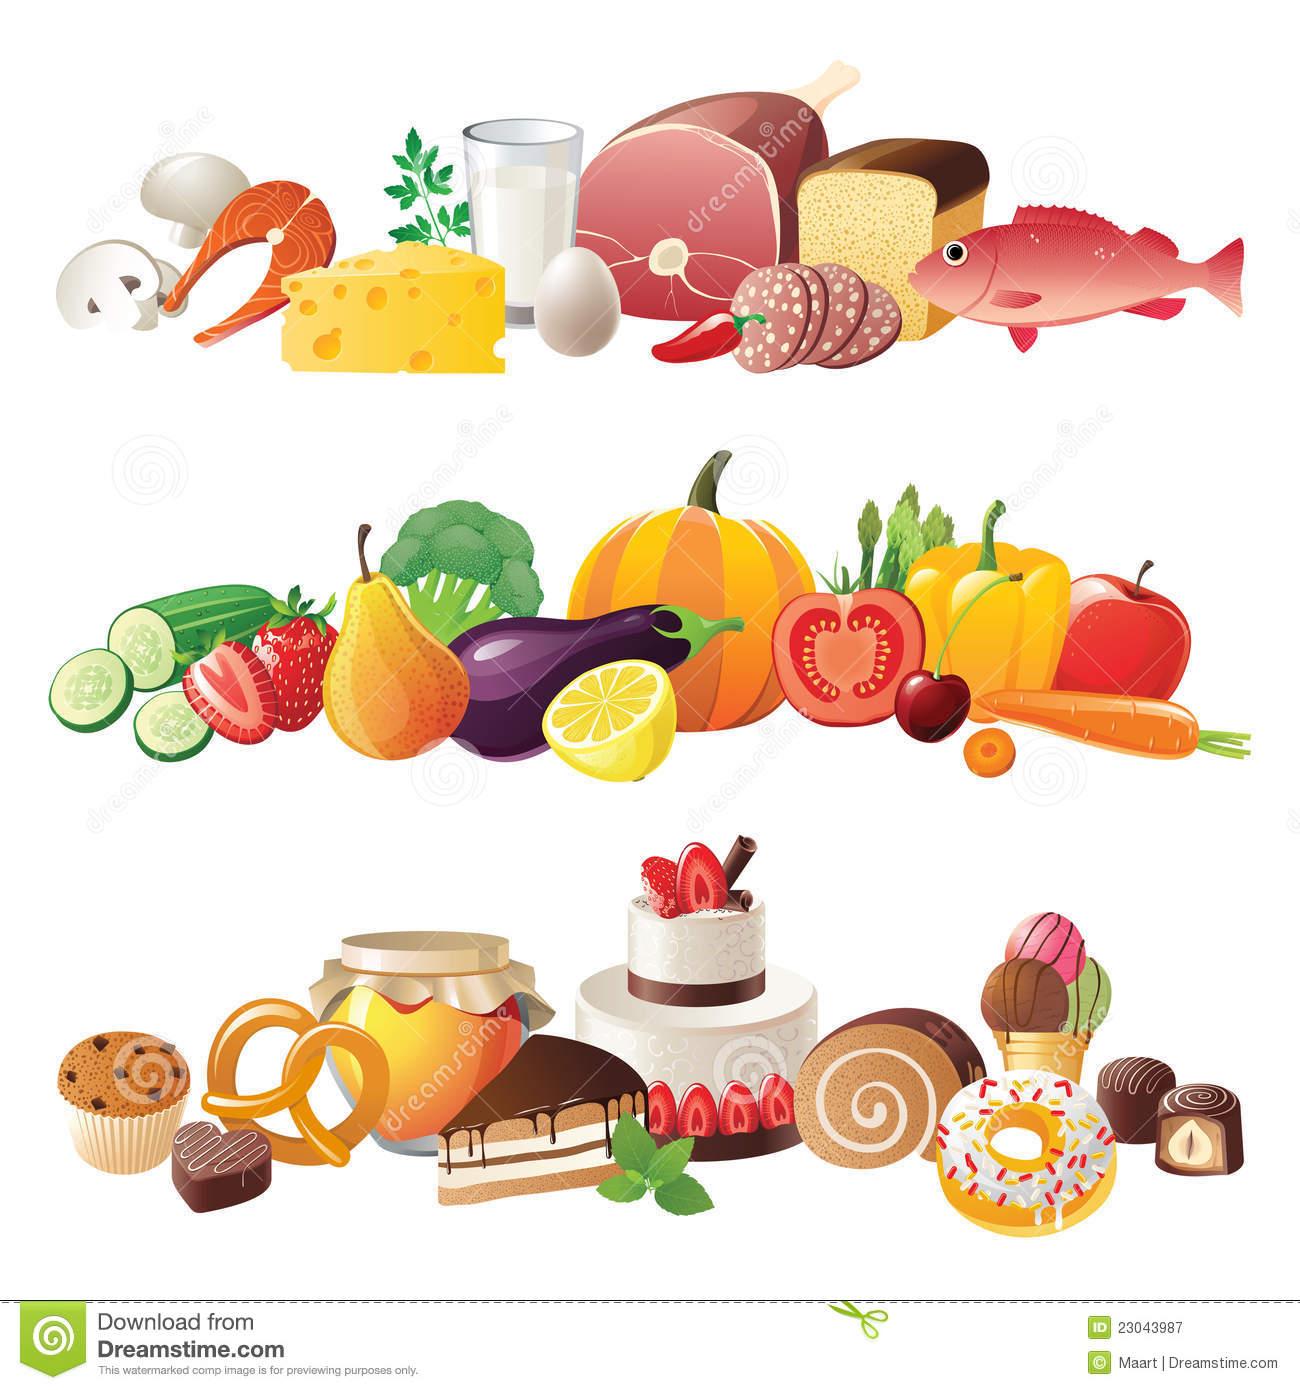 Share cooking clipart border with no watermark.